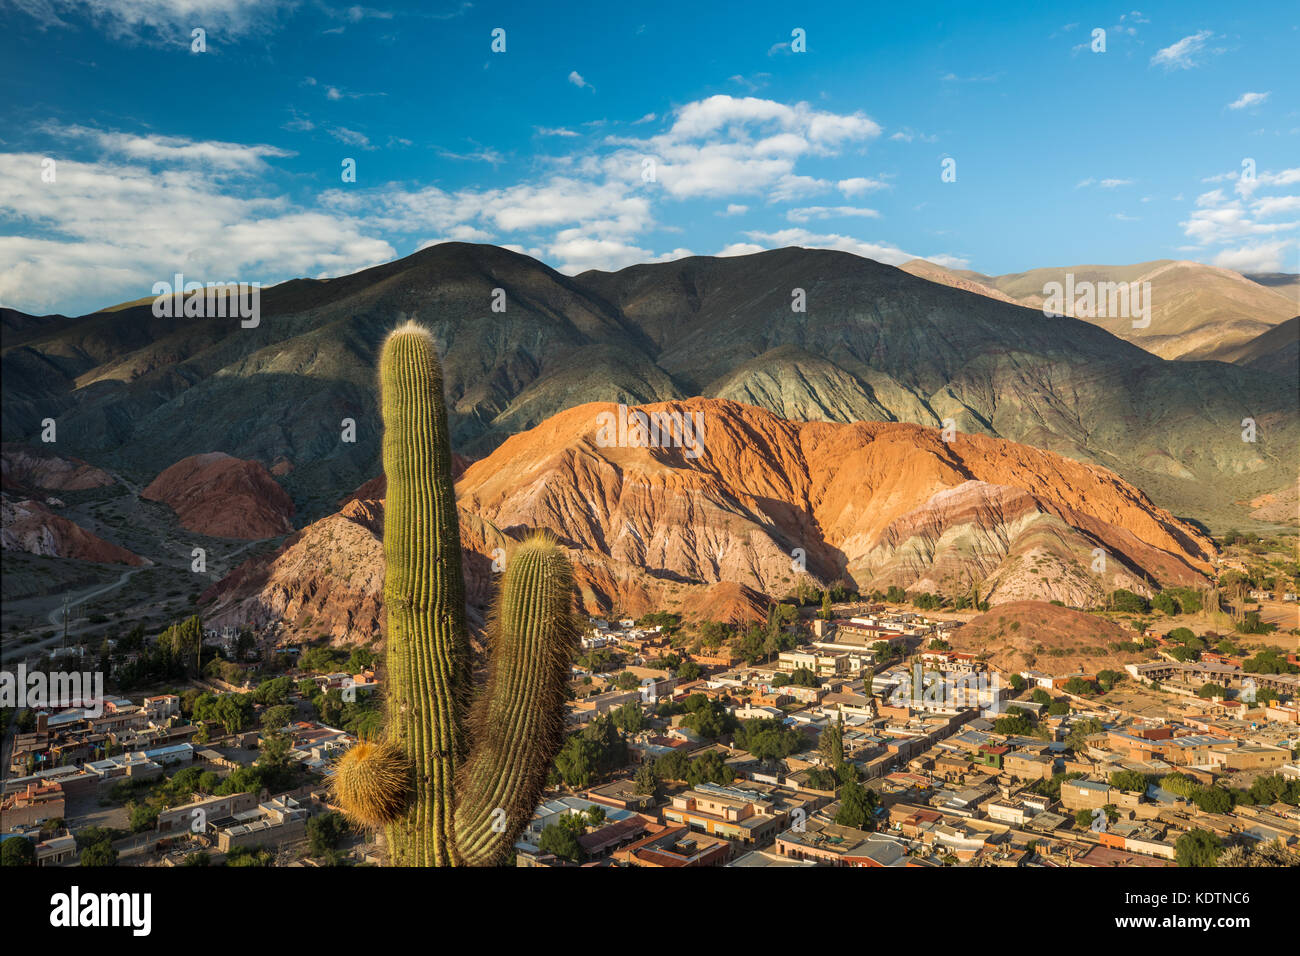 The Cerro de Siete Colores (Hill of Seven Colours) at Purmamarca, Quebrada de Humahuacha, Jujuy Province, Argentina - Stock Image